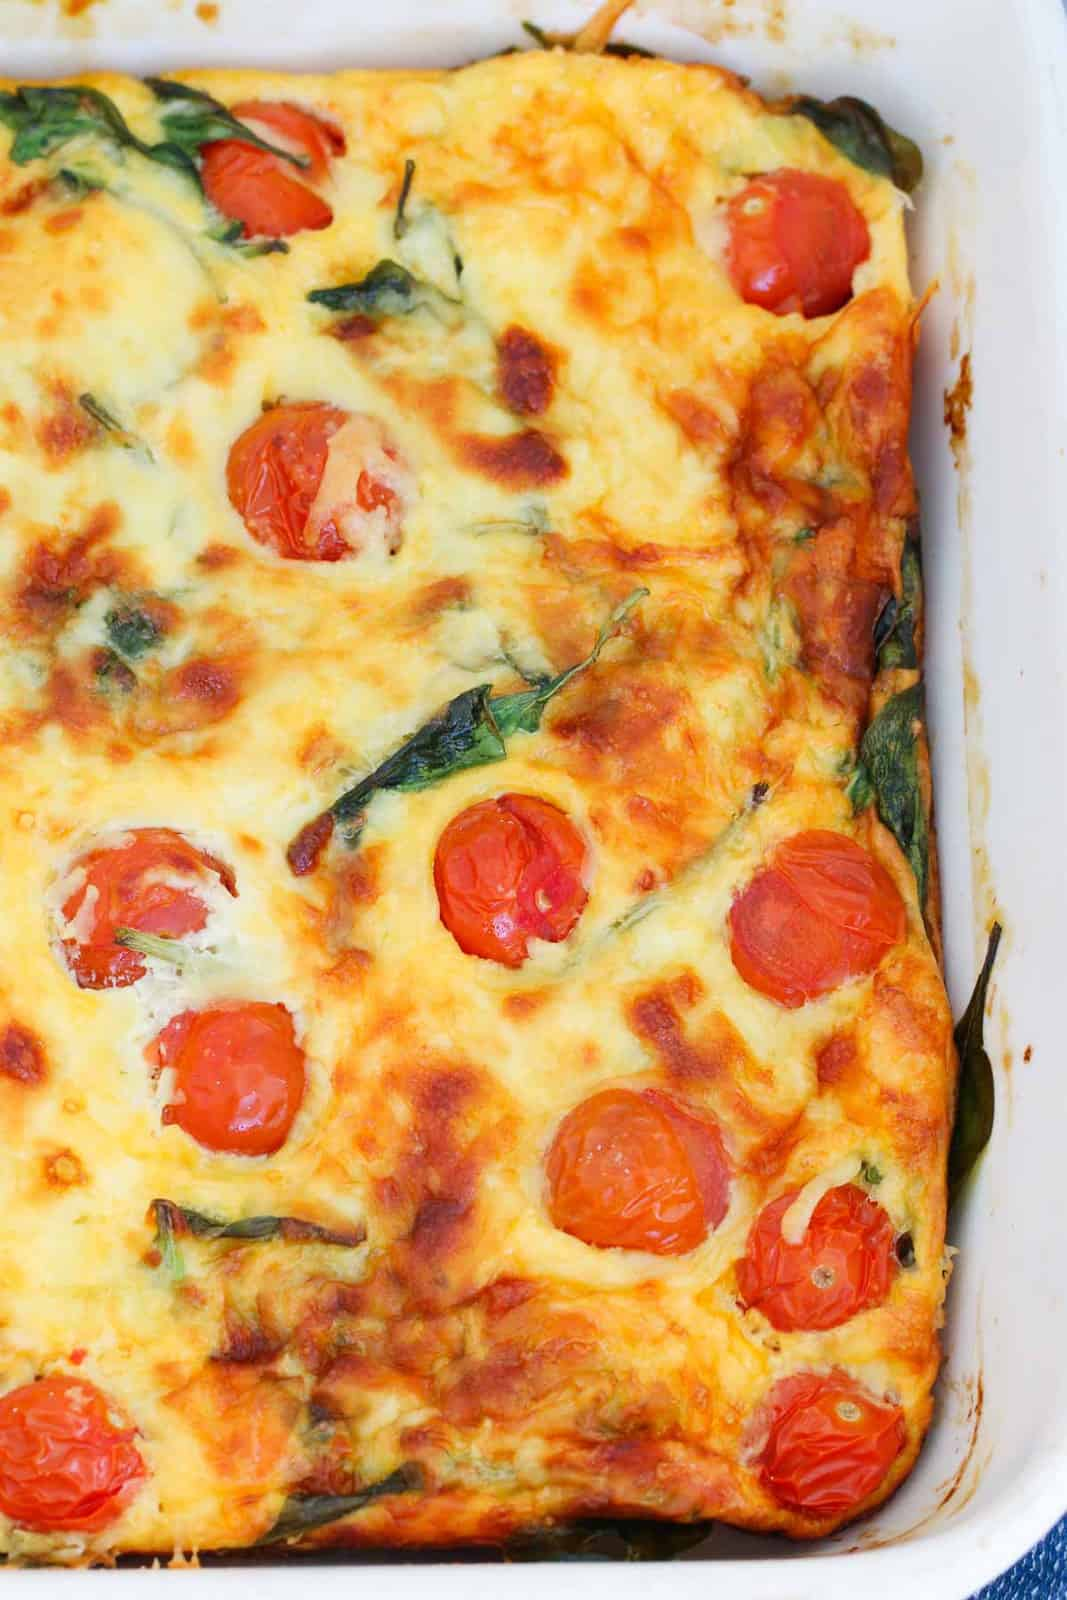 A baked egg frittata topped with cherry tomatoes and melted cheese.